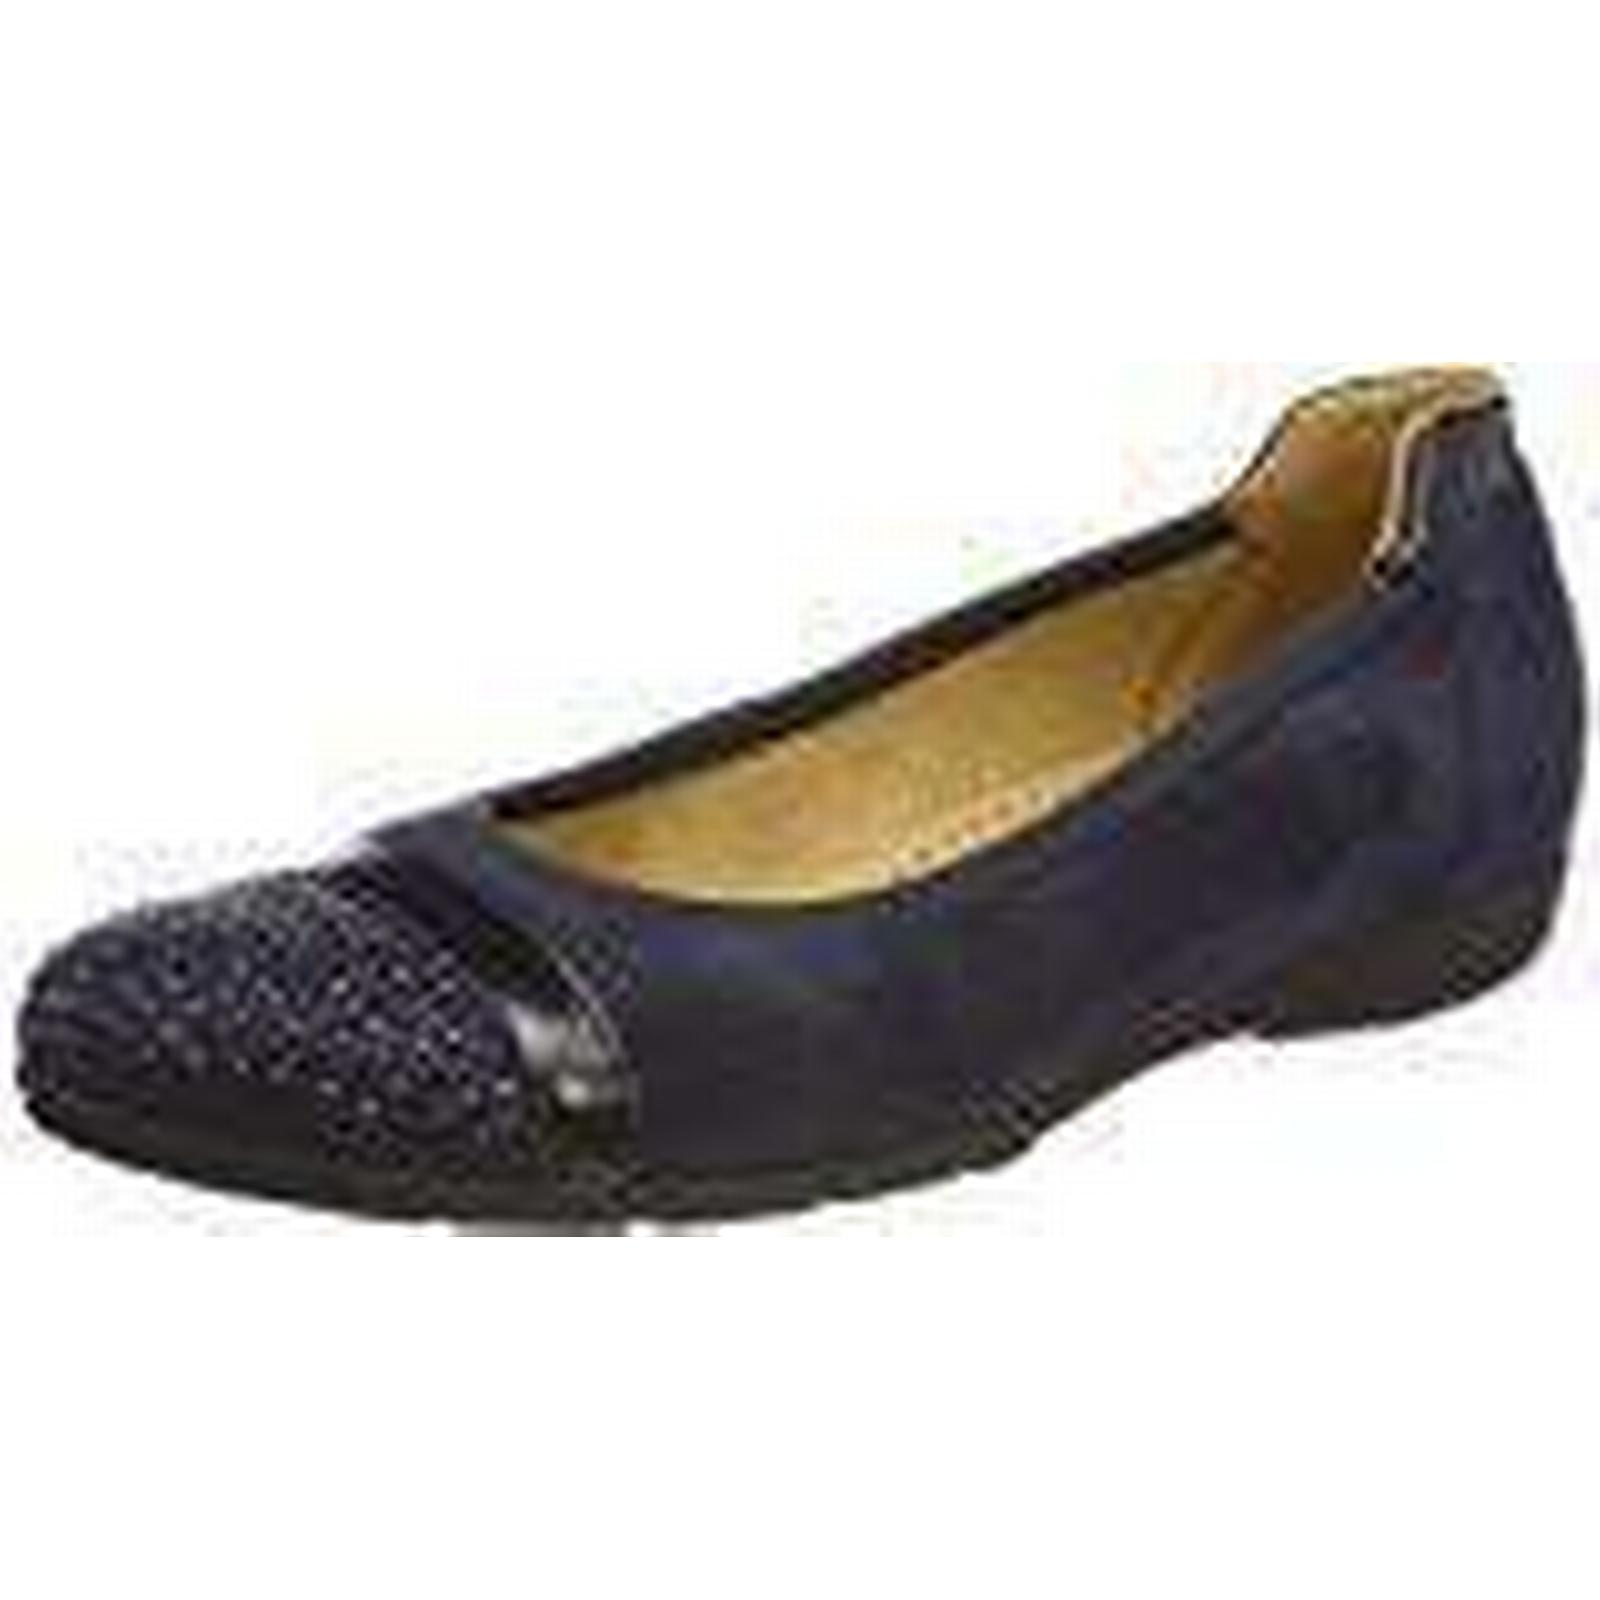 Gabor Women's Casual Closed Toe Ballet Flats, (40.5 Blue (Ocean/Nightblue), 7 UK (40.5 Flats, EU) 6ee23c